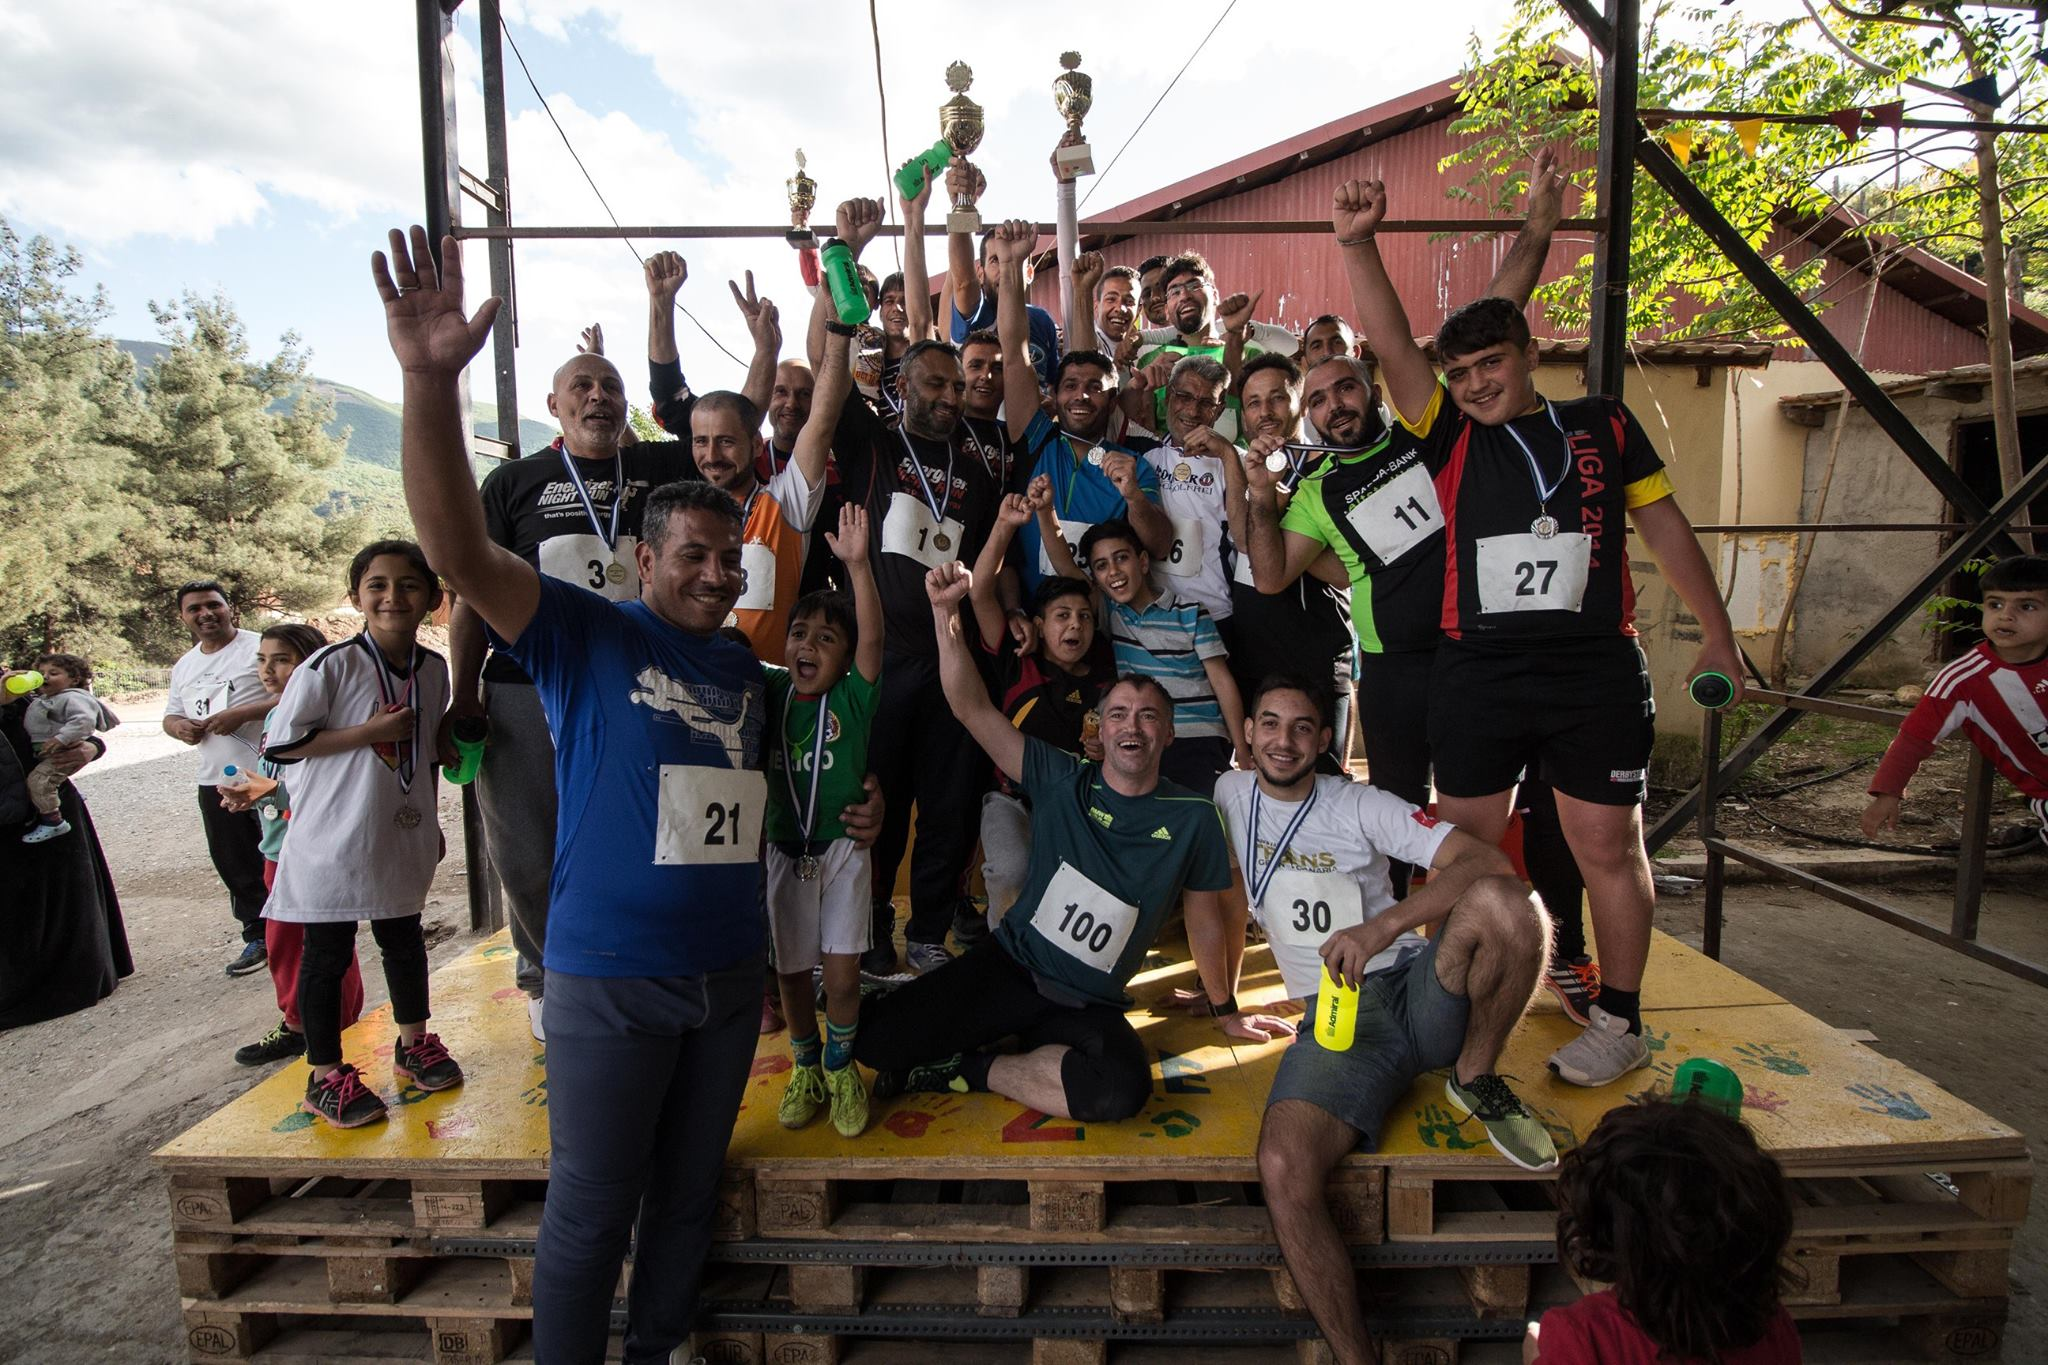 Christian Elm-Hartwig held running training for a week. He gave everyone shoes and clothing, and at the end of his stay he held a running race with medals! Presented on the stage built by our volunteers :)